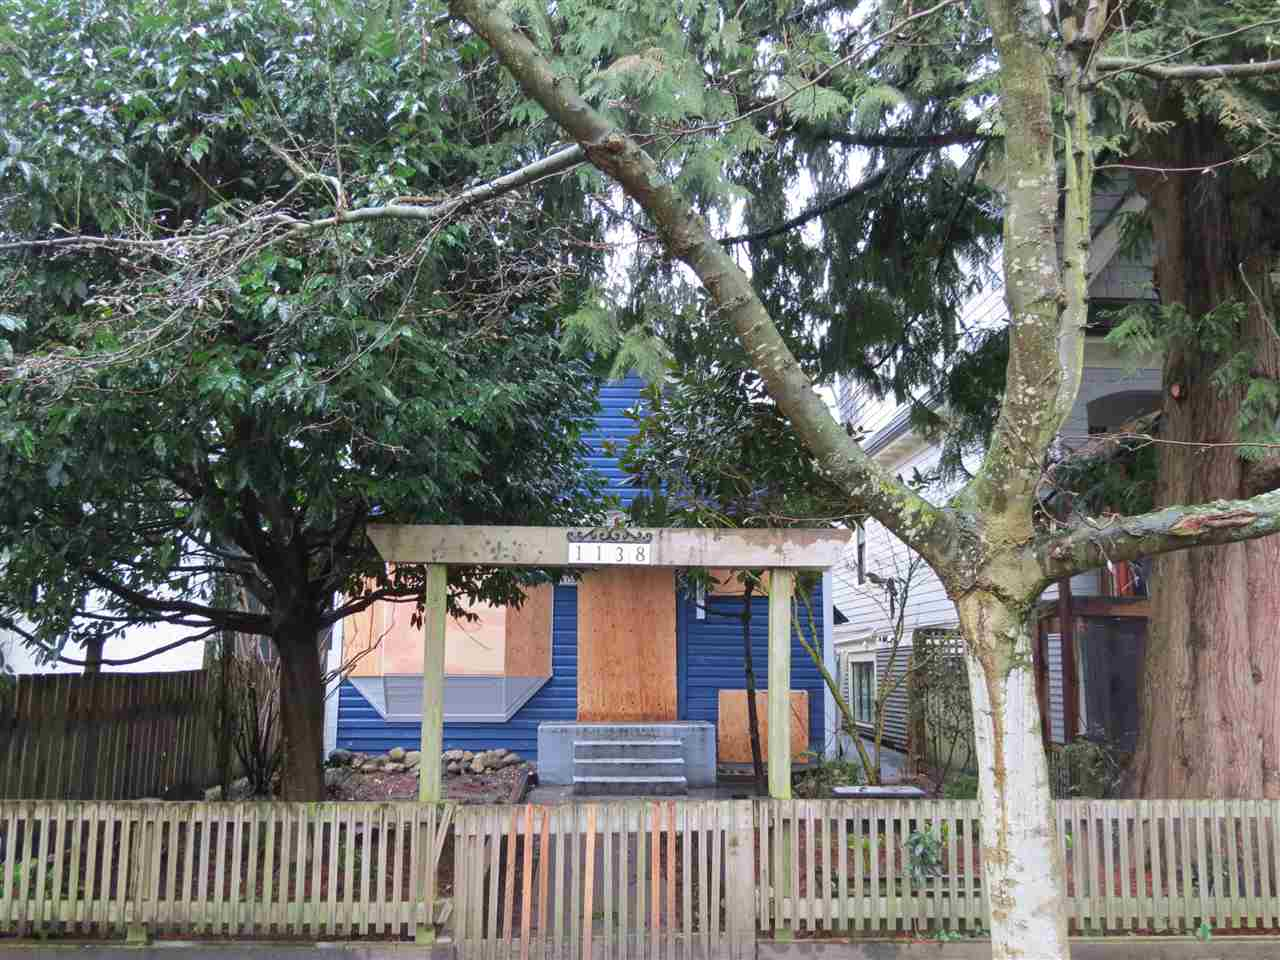 Main Photo: 1138 LILY Street in Vancouver: Grandview VE House for sale (Vancouver East)  : MLS® # R2035190